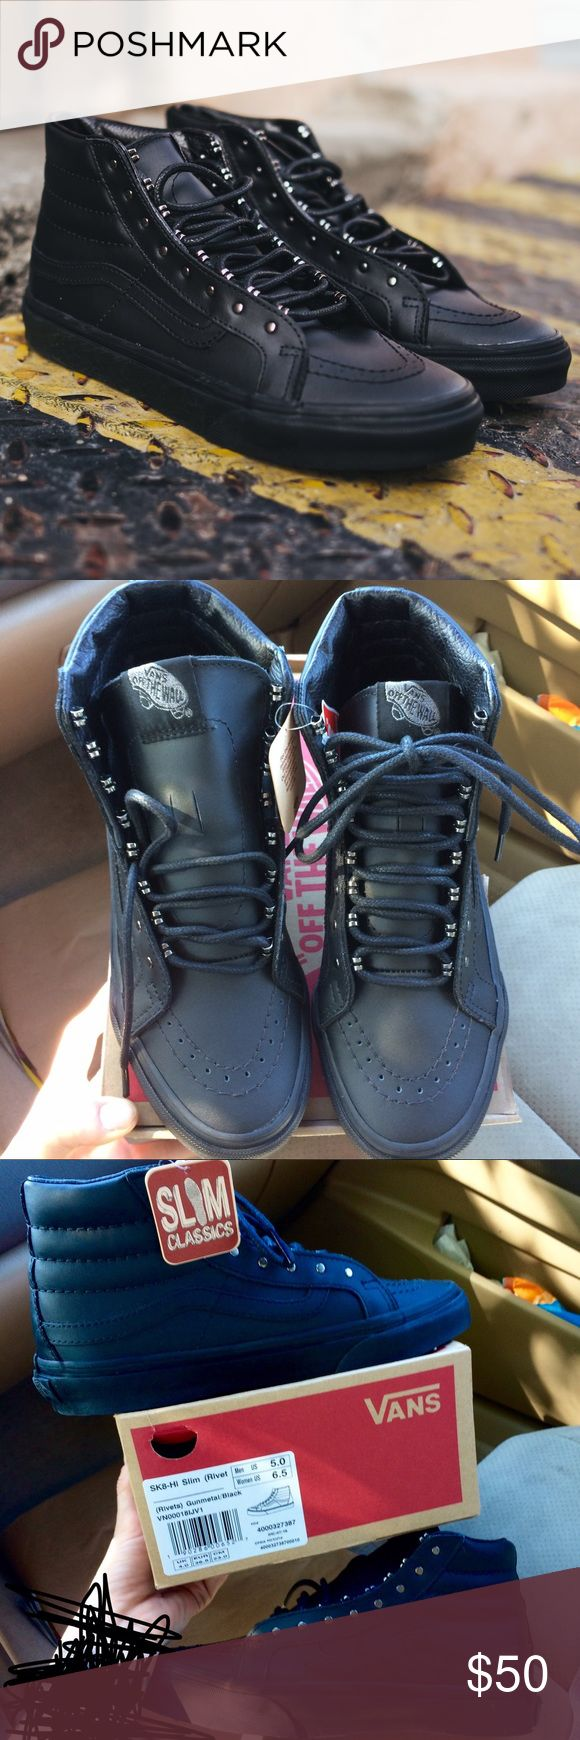 SALE! New! Vans Sk8-Hi Top Leather Rivets RARE! 2 different sizes available!    Never worn! Great condition as pictured above! *Genuine Leather! 😳   Comes with the original box and two extra sets of shoe laces & stickers! 💰😉 Even with shipping this is a great deal!! Vans Shoes Sneakers